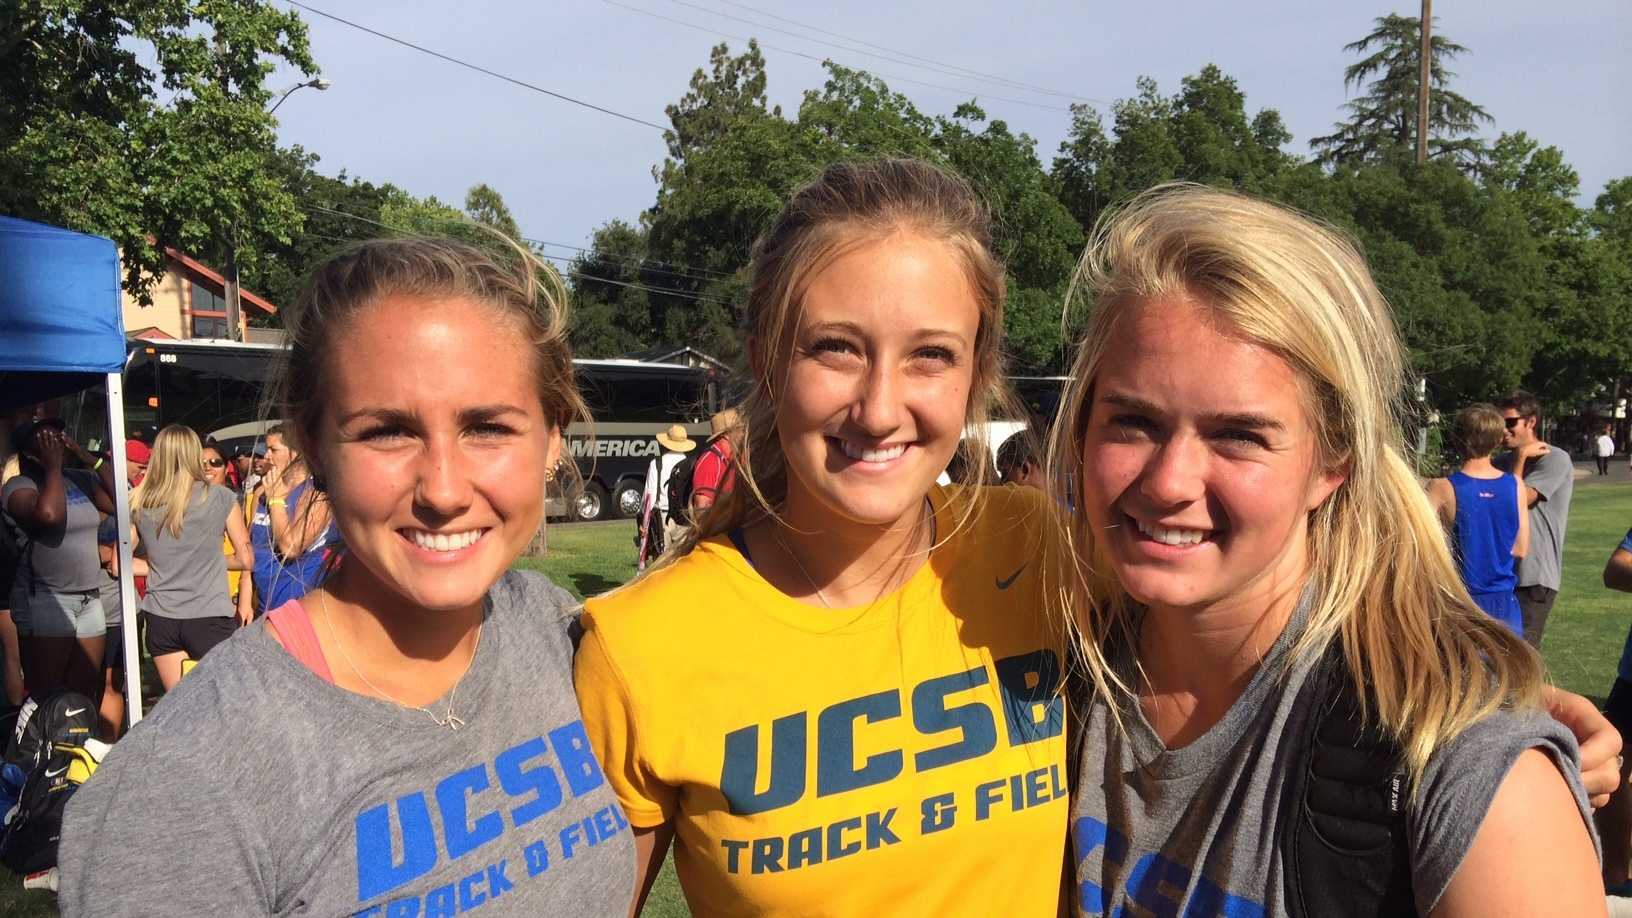 Local standouts Maxine Goyette, Jessica Emde, and Shannon Trumbull, all Oak Ridge High School graduates, now compete for the University of California, Santa Barbara. All three made their way to Big West Conference championships. Emde placed 3rd in the conference in high jump, Goyette placed 2nd in the conference in steeplechase, and Trumbull competed in the 100m hurdles. The three former and current teammates are all sophomores.